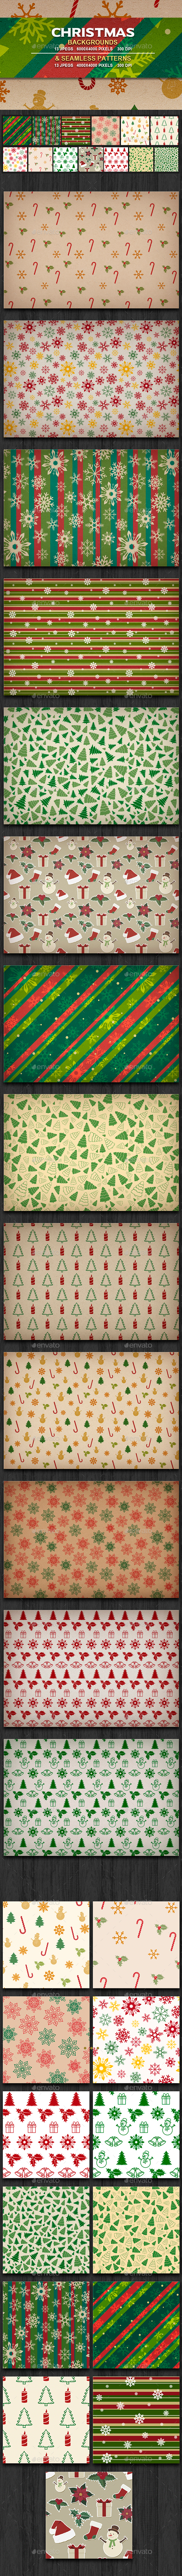 Christmas Backgrounds & Patterns  - Backgrounds Graphics